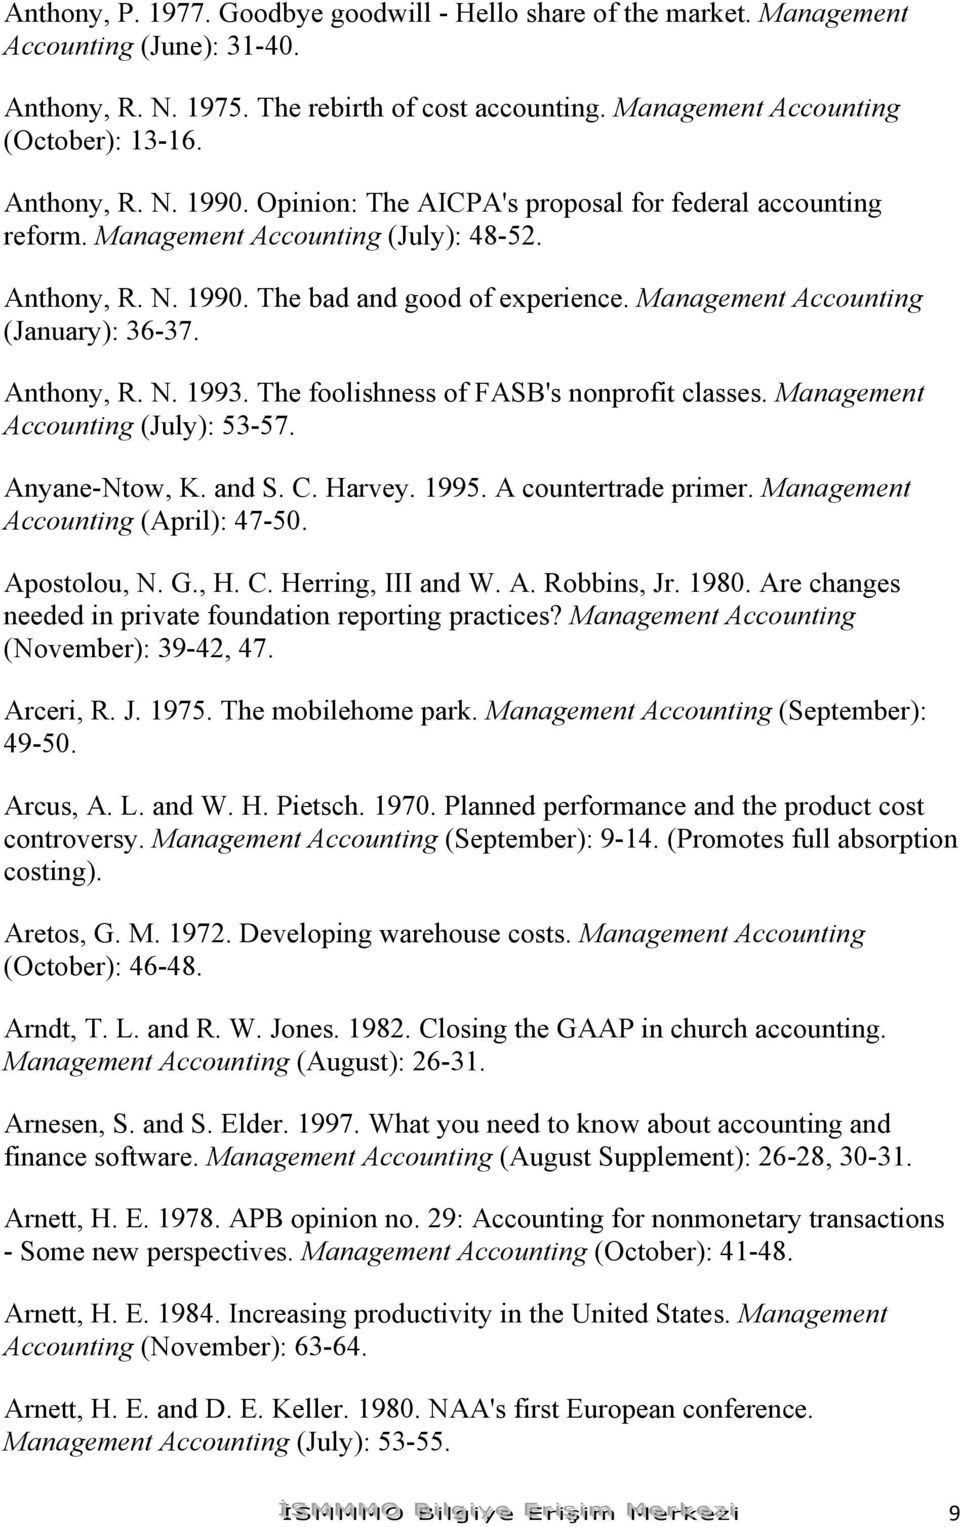 Management Accounting (January): 36-37. Anthony, R. N. 1993. The foolishness of FASB's nonprofit classes. Management Accounting (July): 53-57. Anyane-Ntow, K. and S. C. Harvey. 1995.